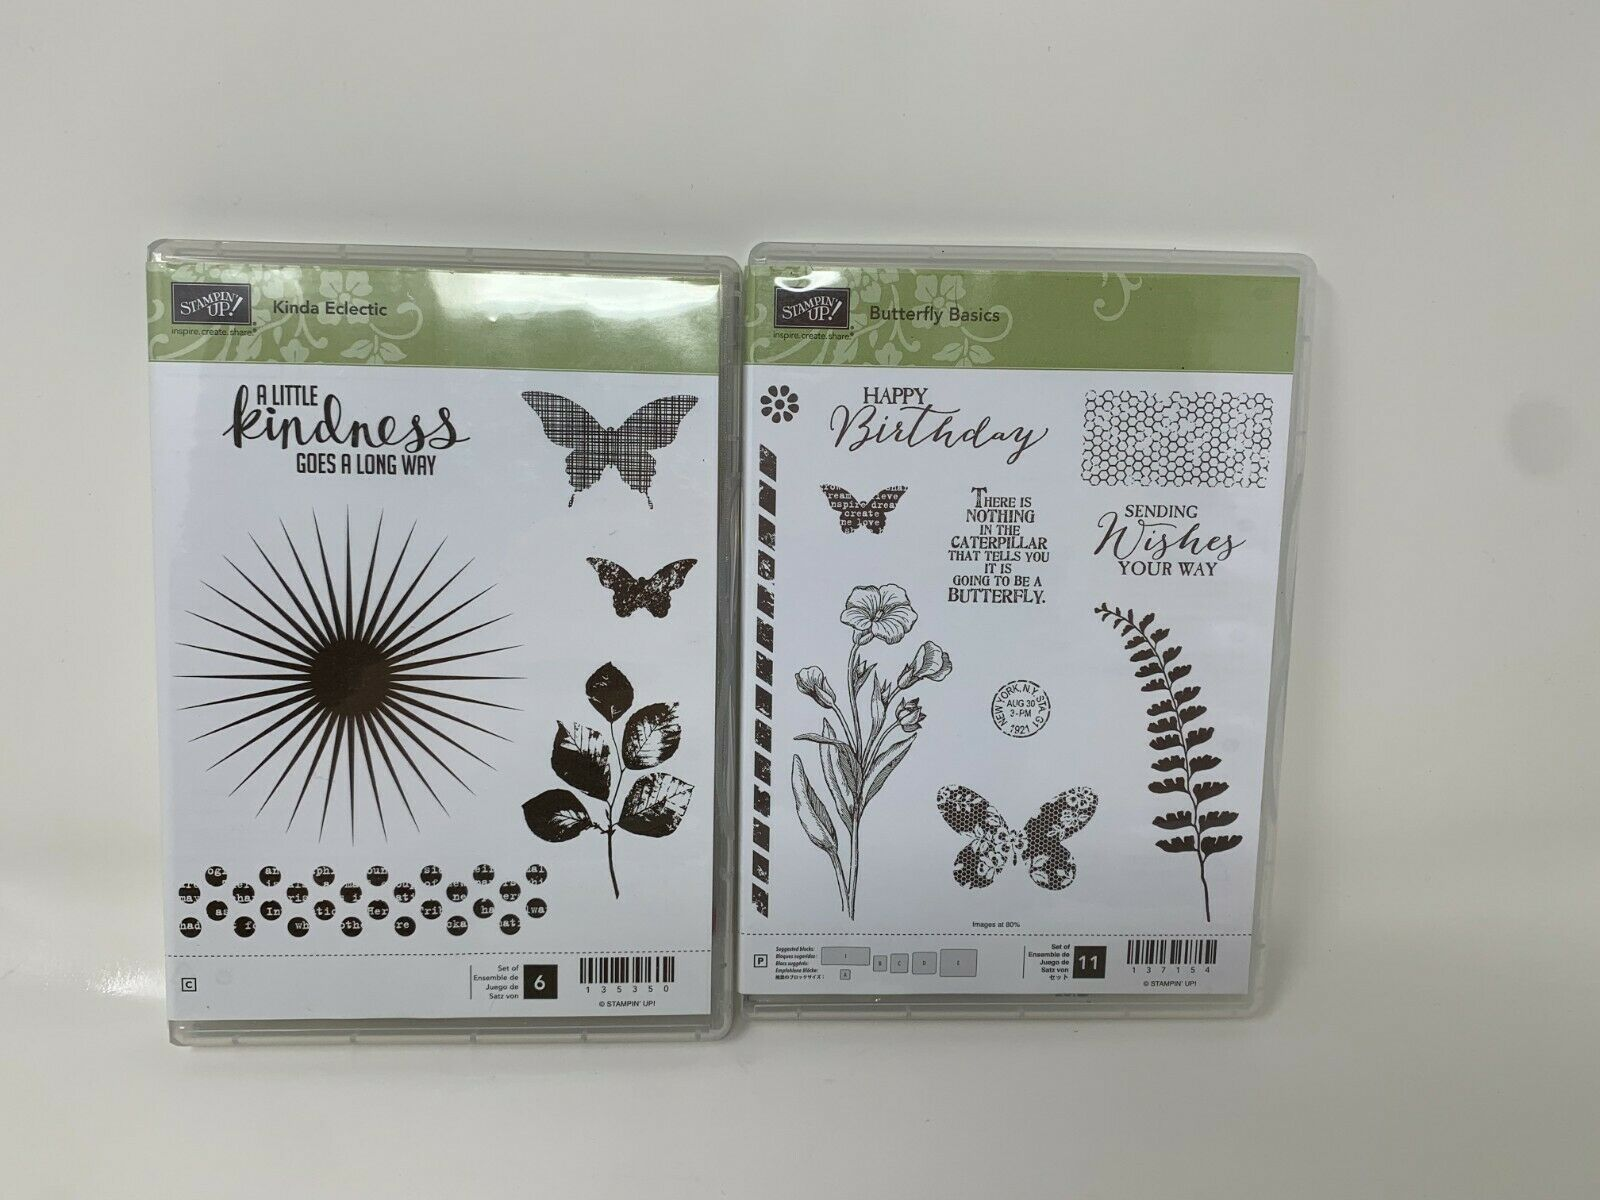 Primary image for Stampin Up Butterfly Basics & Kinda Eclectic Kindness Photopolymer Stamp set NEW